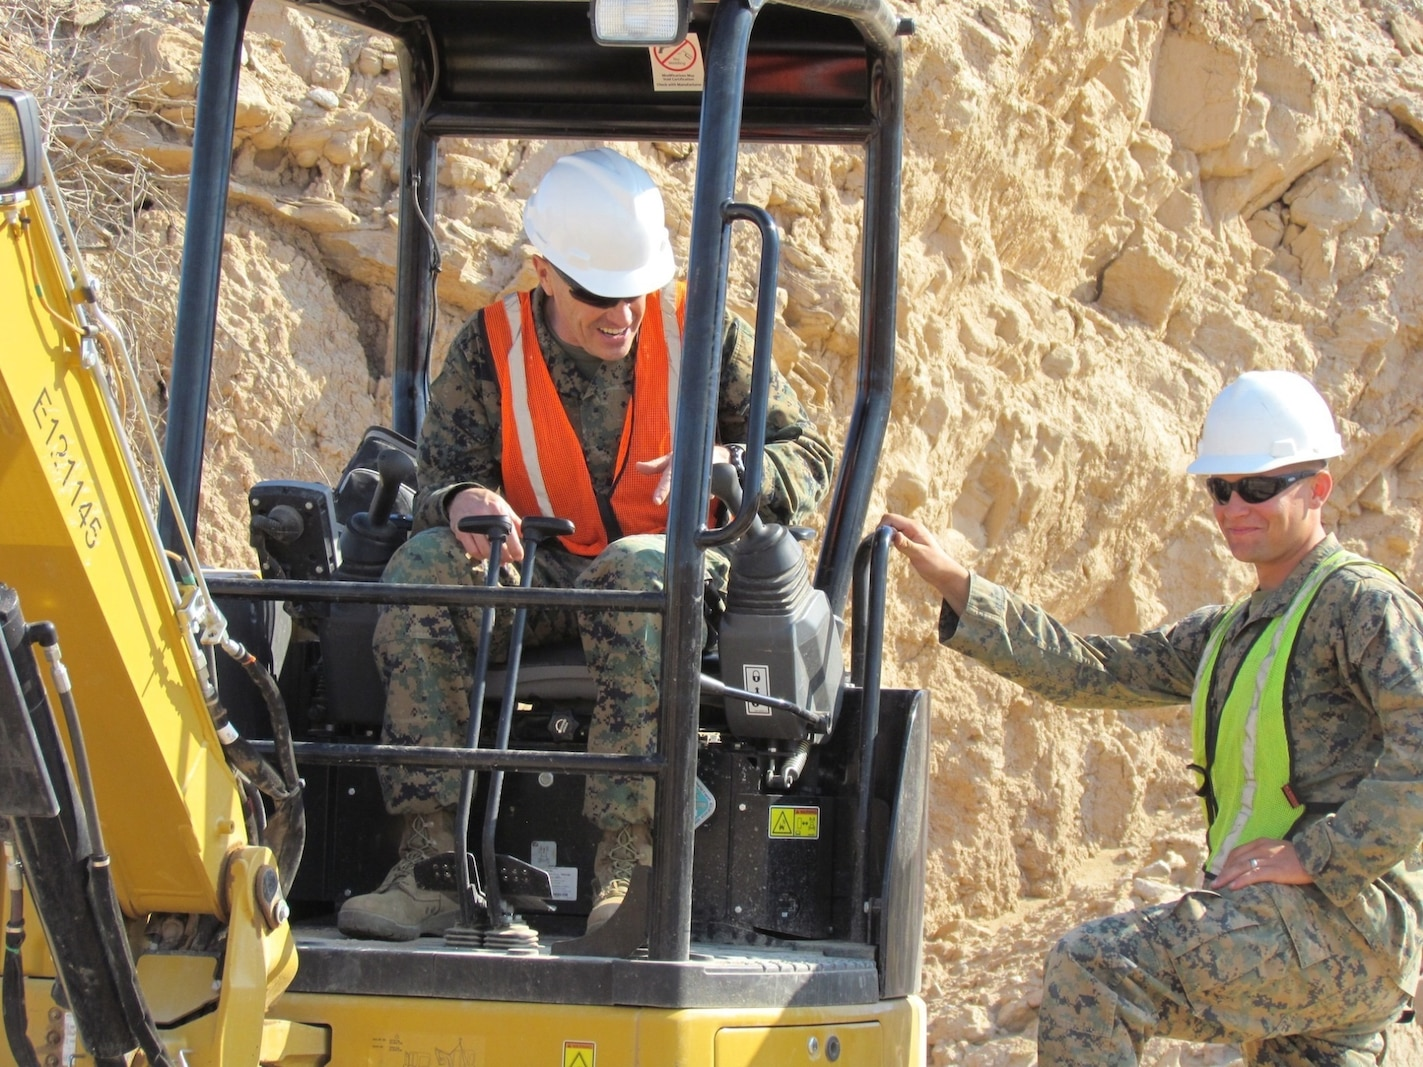 Major Gen. Vincent Coglianese, left, 1st Marine Logistics Group Commanding General, talks with a combat engineer Marine with 7th Engineer Support Battalion, 1st MLG, during a visit to El Centro, California, Feb. 26, 2015.  Marines arrived during January, providing engineering support to construct an all-weather road in El Centro, California, along the United States-Mexico border to increase U.S. border patrol mobility and support the interdiction of transnational threats. (U.S. Marine Corps photo by 1st Lt. Thomas Gray/ Released)